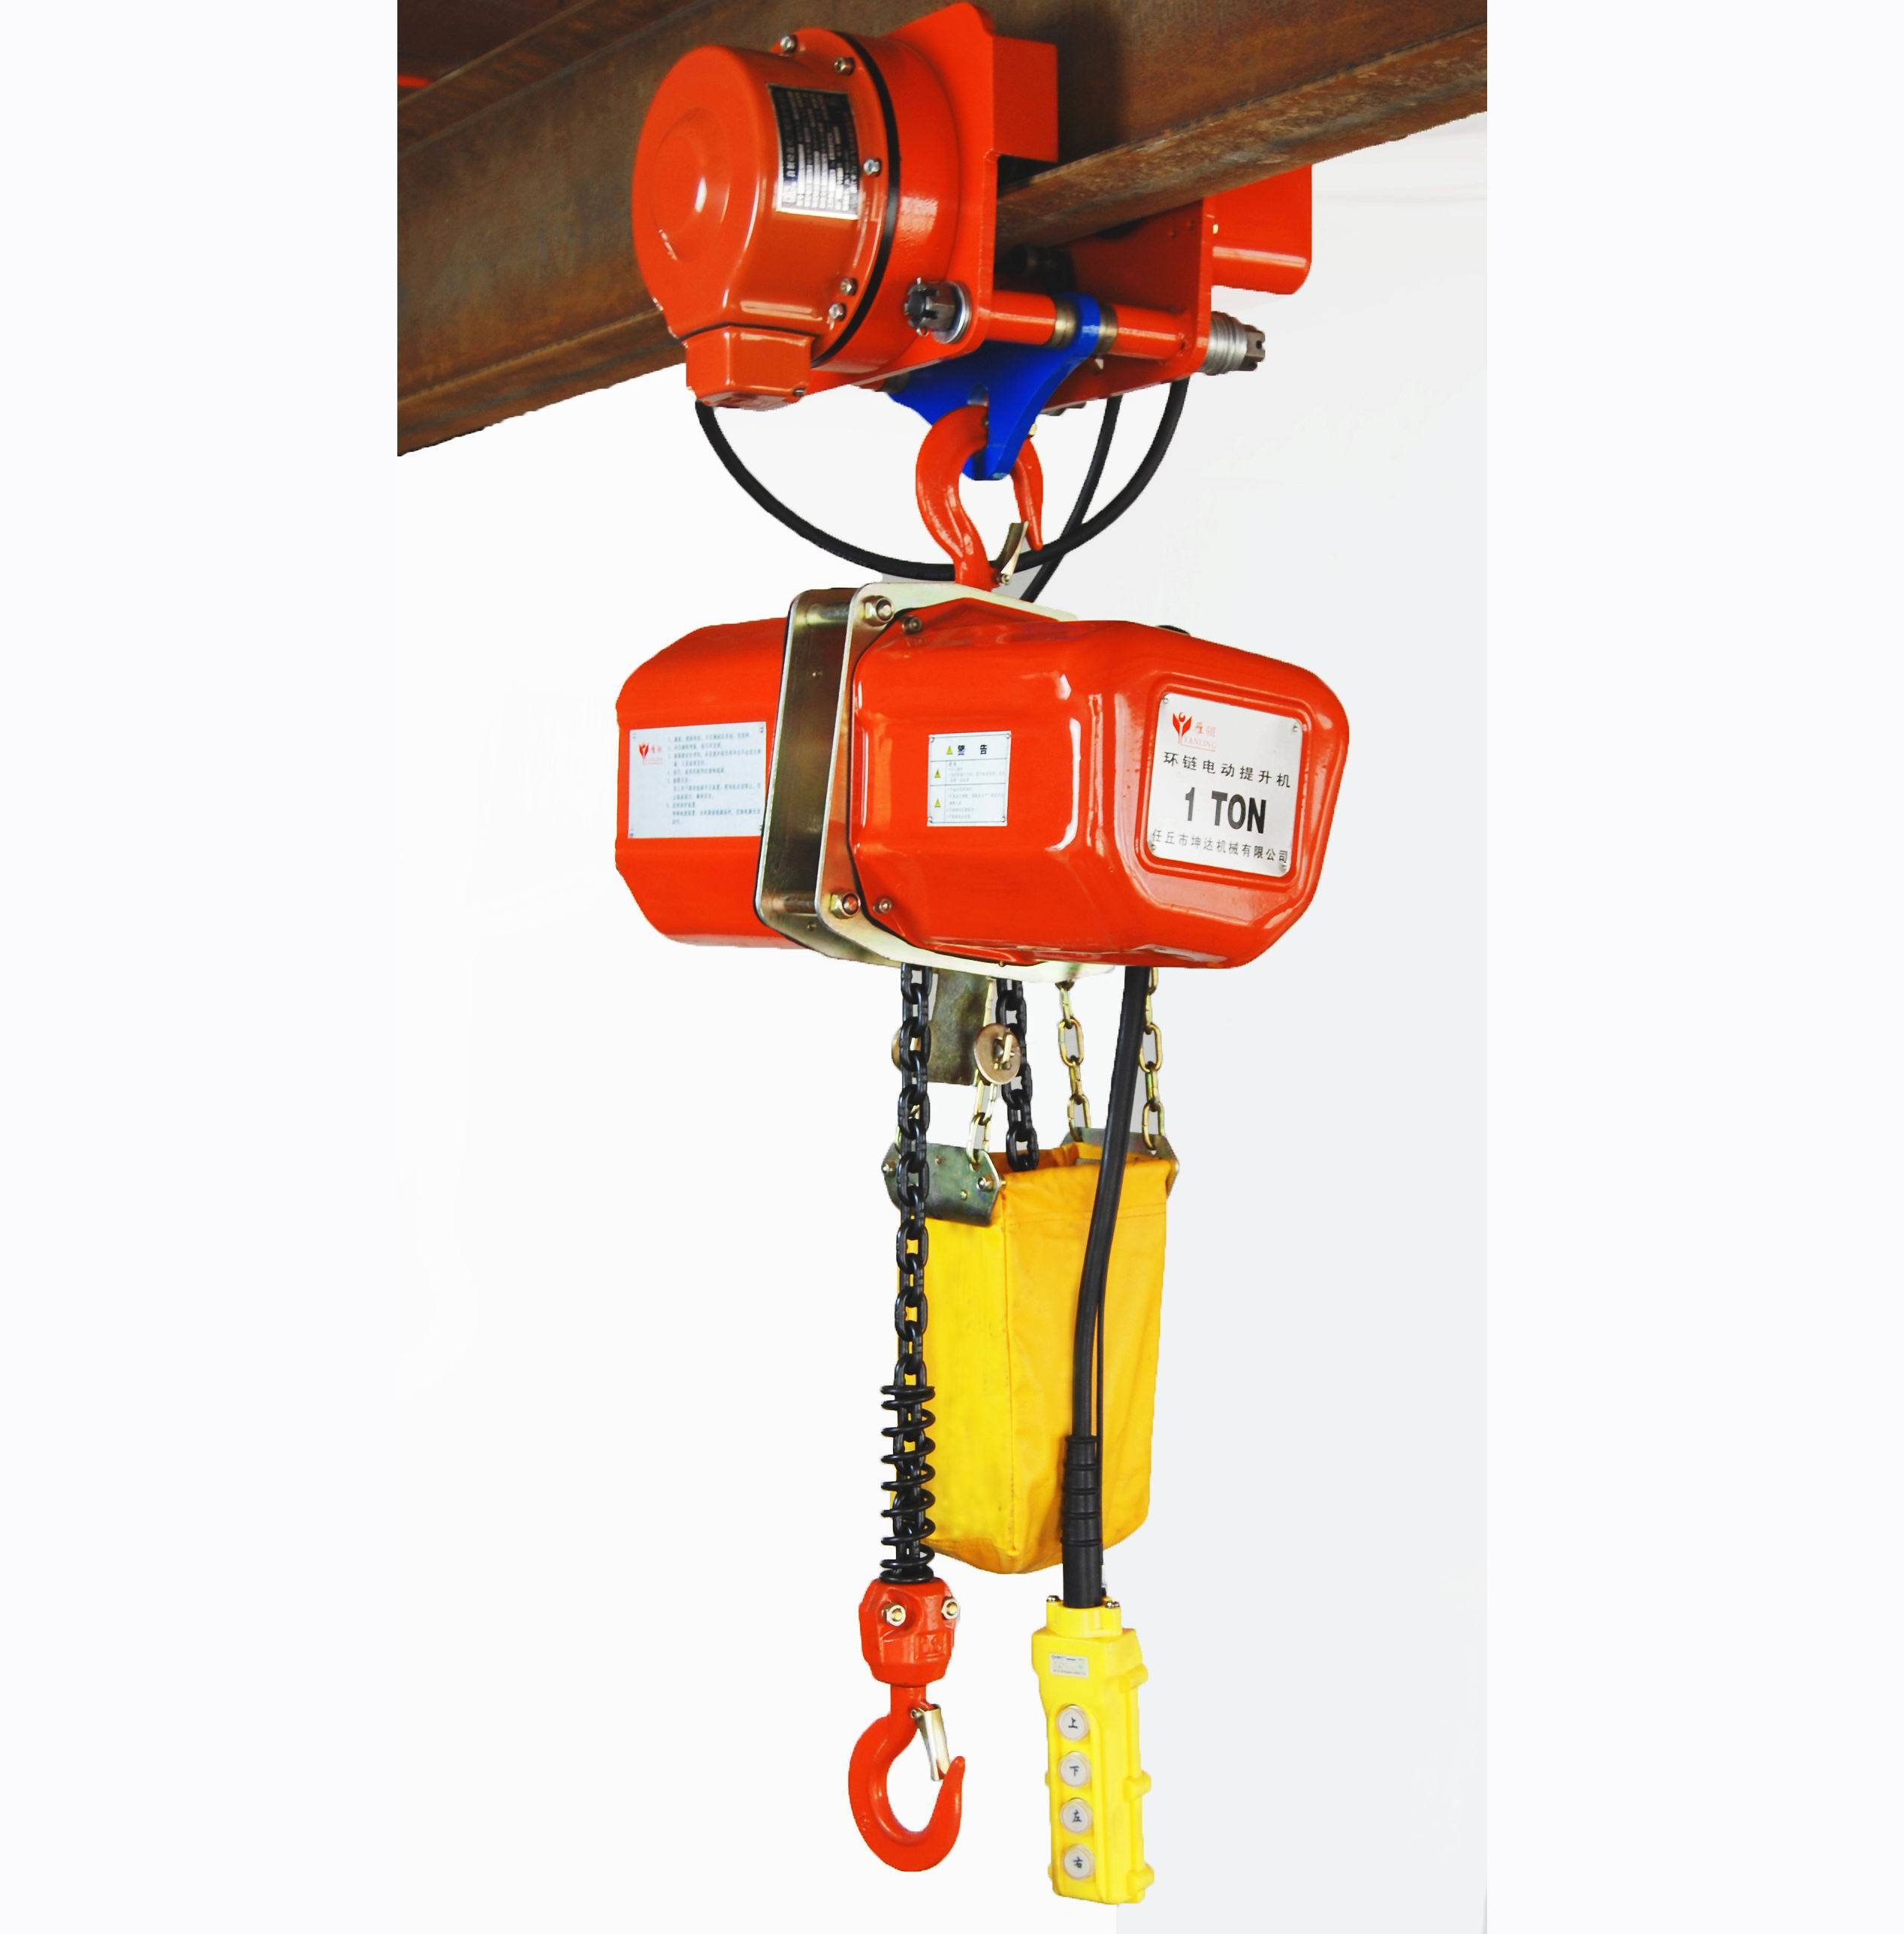 China Hhxg Electric Chain Hoist Photos Pictures Made